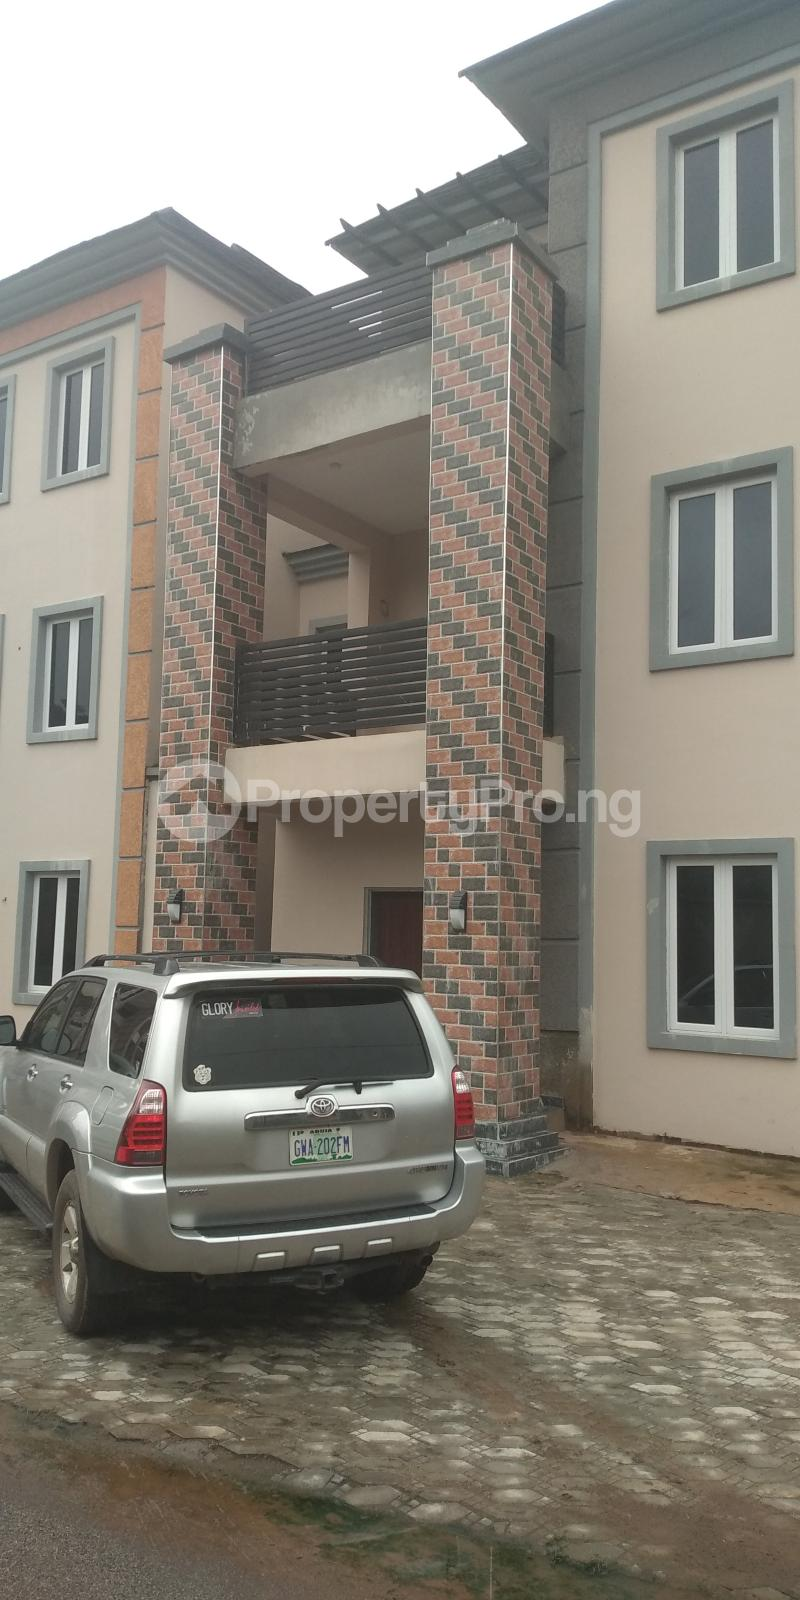 5 bedroom Flat / Apartment for sale Life Camp Abuja - 17